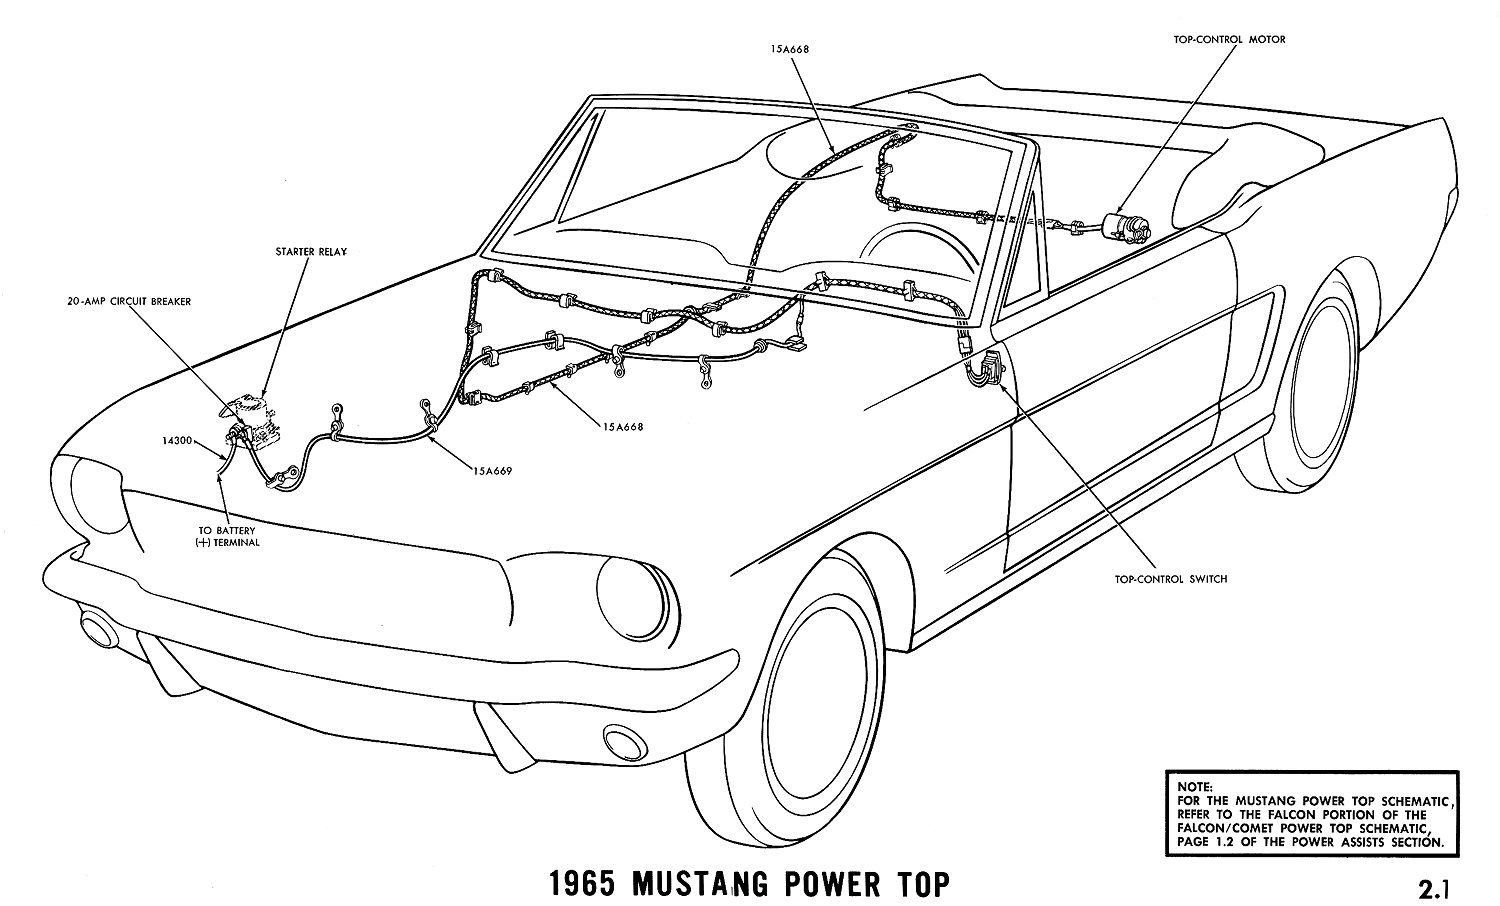 1965 Mustang Wiring Diagrams - Average Joe Restoration on 1967 mustang wiper motor wiring diagram, 1965 mustang fuel pump diagram, 1965 mustang brake line diagram, 1965 mustang starter solenoid, 1965 mustang engine diagram, mustang wiring harness diagram, 1965 mustang exhaust diagram, 1965 mustang assembly diagram, 1965 mustang 289 hipo engine, 1965 mustang outline, 1965 mustang blueprints, 1965 mustang door diagram, 1964 mustang wiring diagram, 1965 mustang burnt amber, 1966 mustang alternator diagram, 1965 mustang fuse box diagram, 1965 mustang voltage regulator diagram, ford mustang wiring diagram, 1965 mustang tachometer diagram, 1966 mustang wiring diagram,